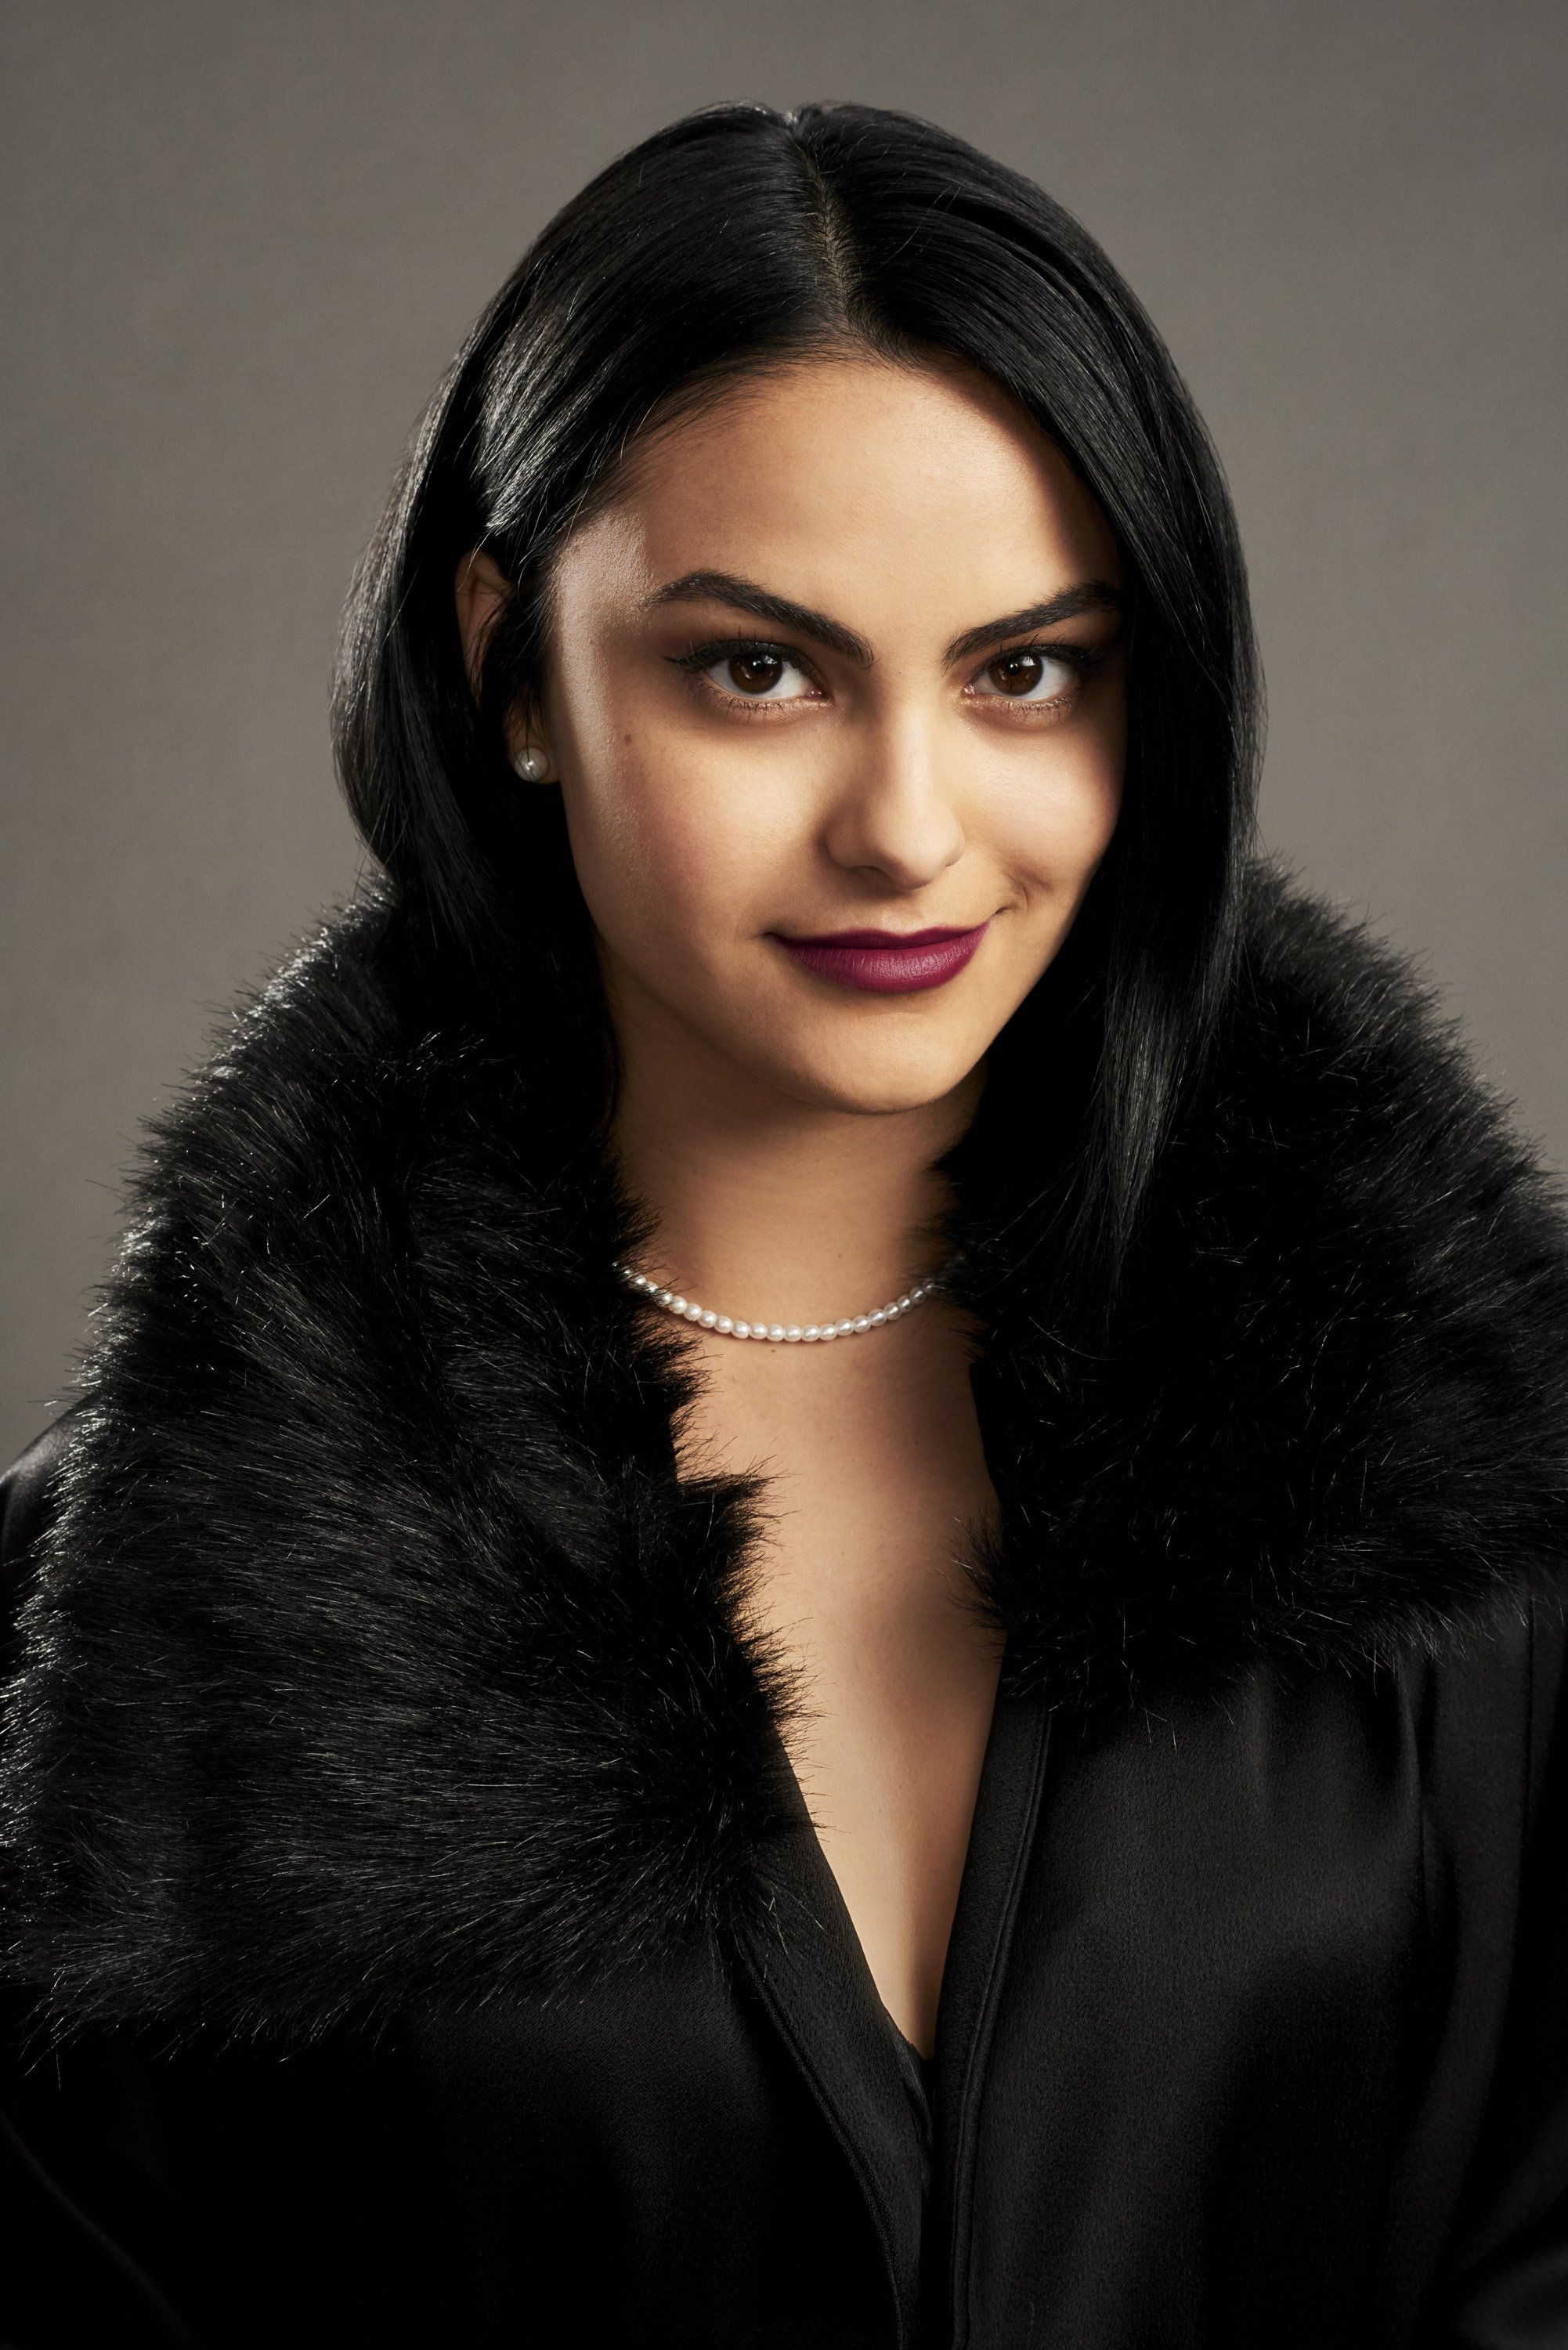 Veronica lodge images 21